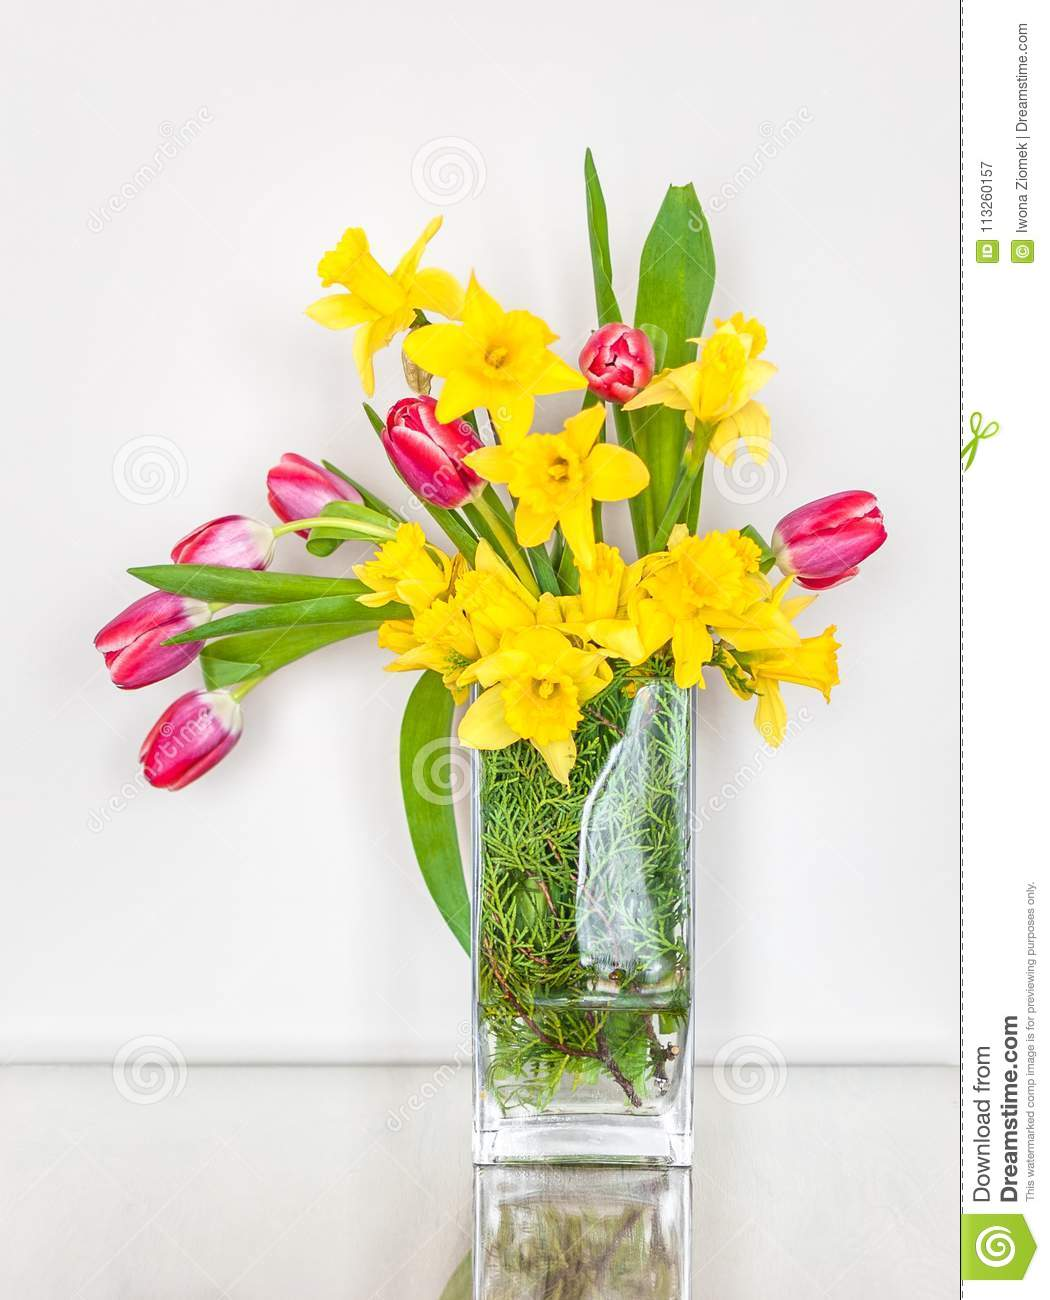 Spring And Easter Flower Arrangement Stock Image Image Of Spring